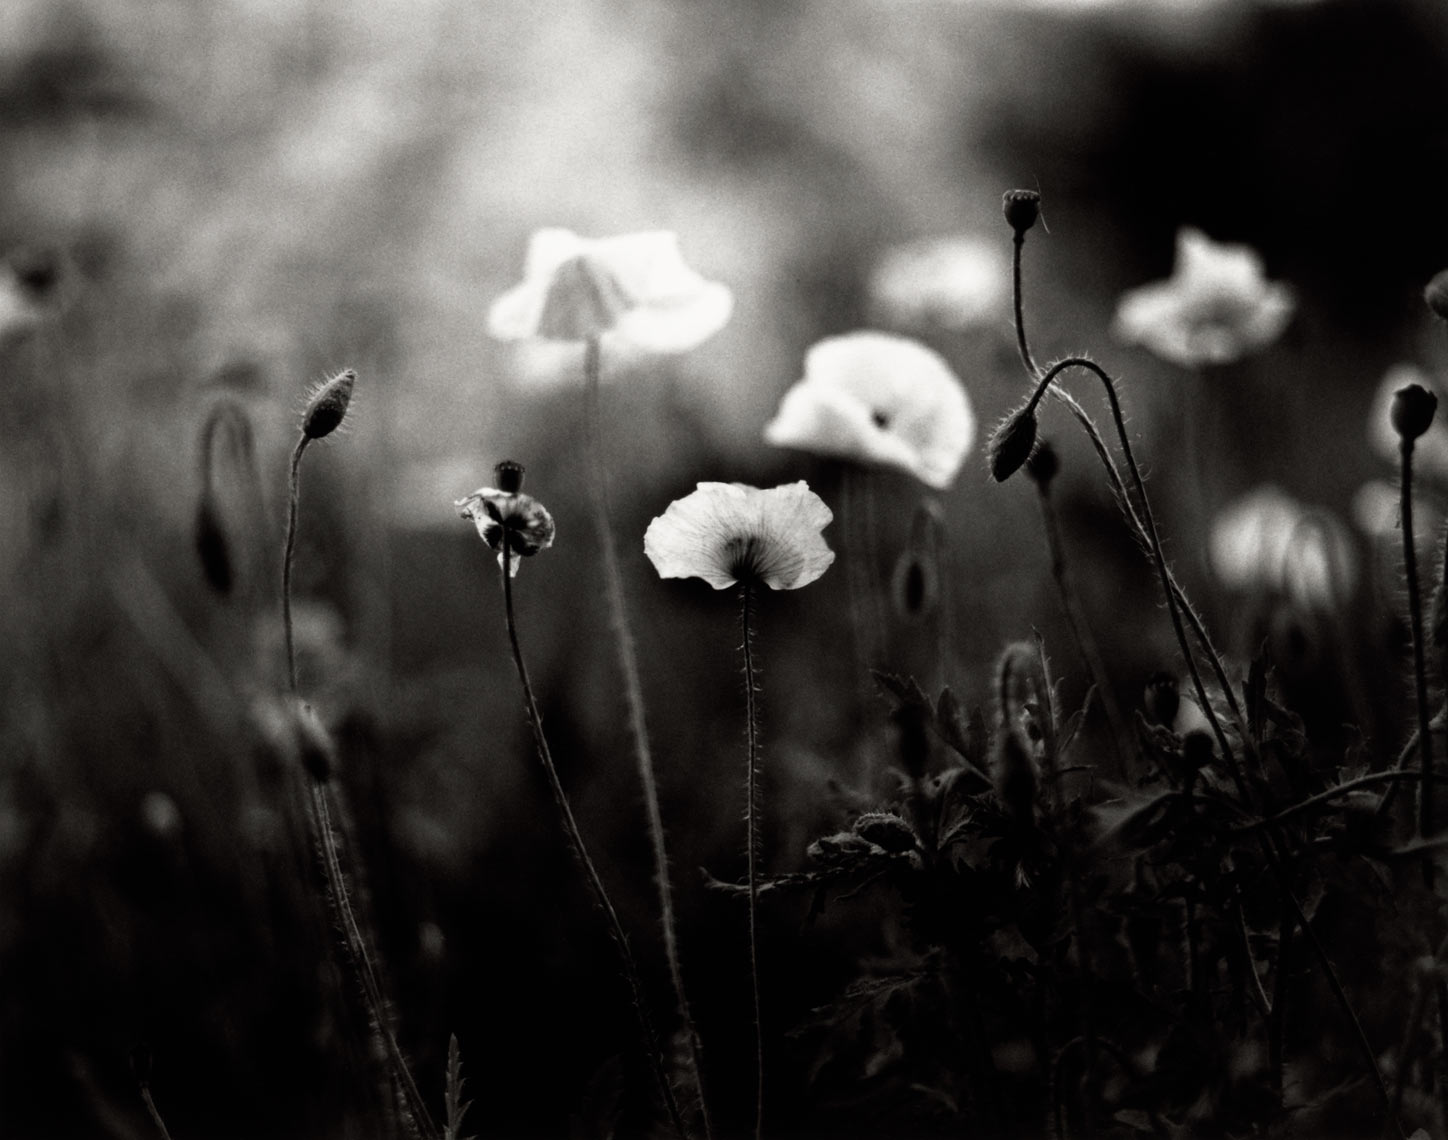 David Lebe; Shirley Poppies, 1997, garden black and white photograph